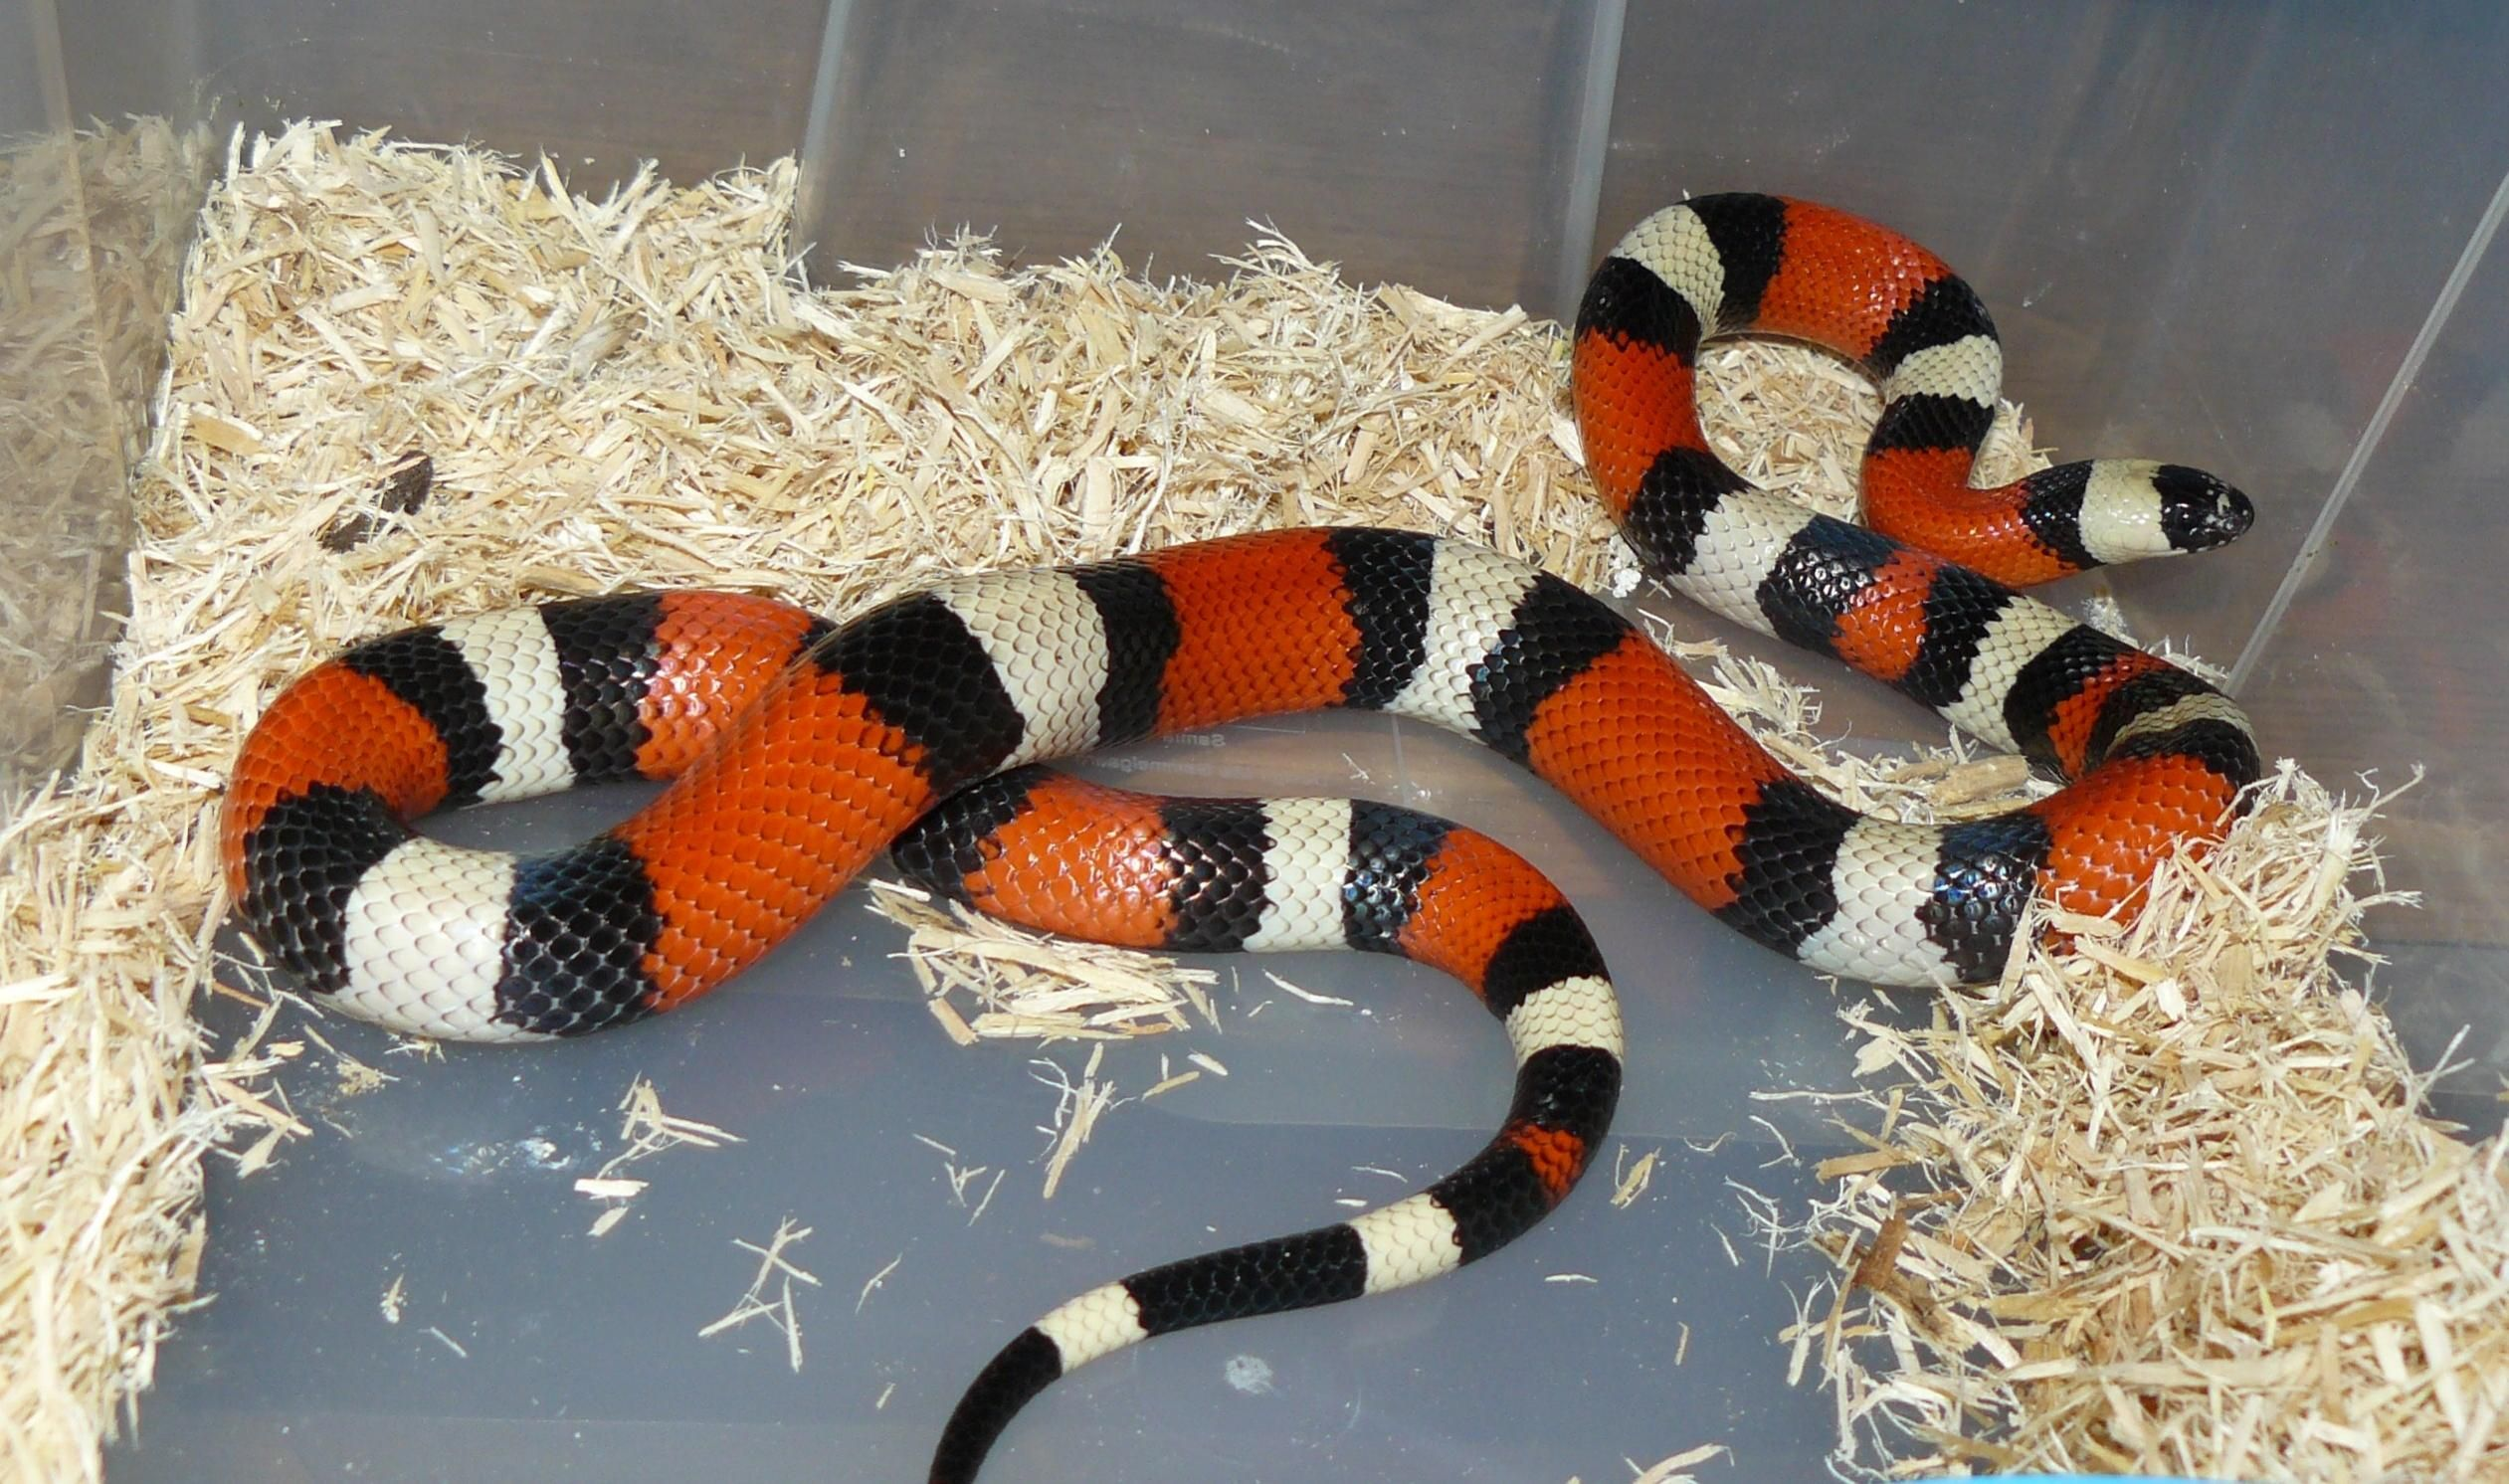 How To Care For A Milk Snake Milk Snake Snake Pet Snake